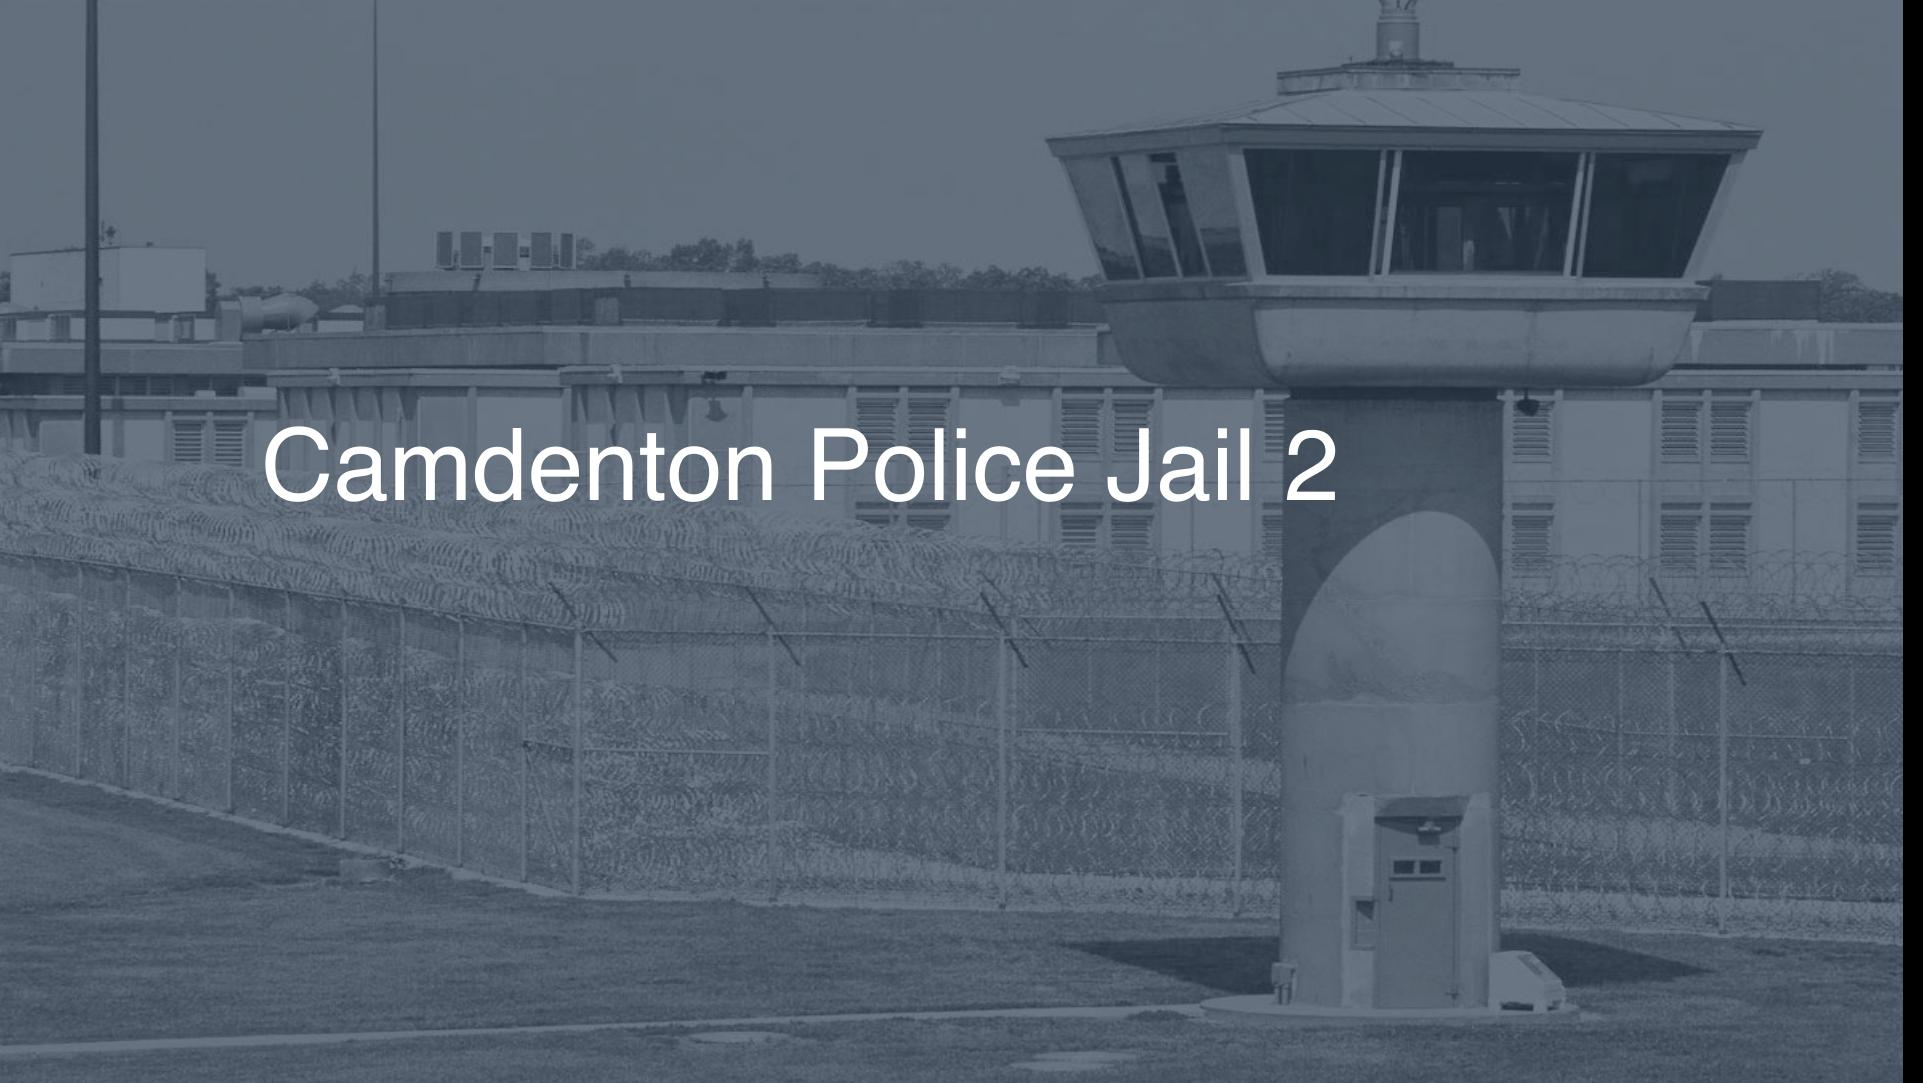 Camdenton Police Jail | Pigeonly - Inmate Search, Locate